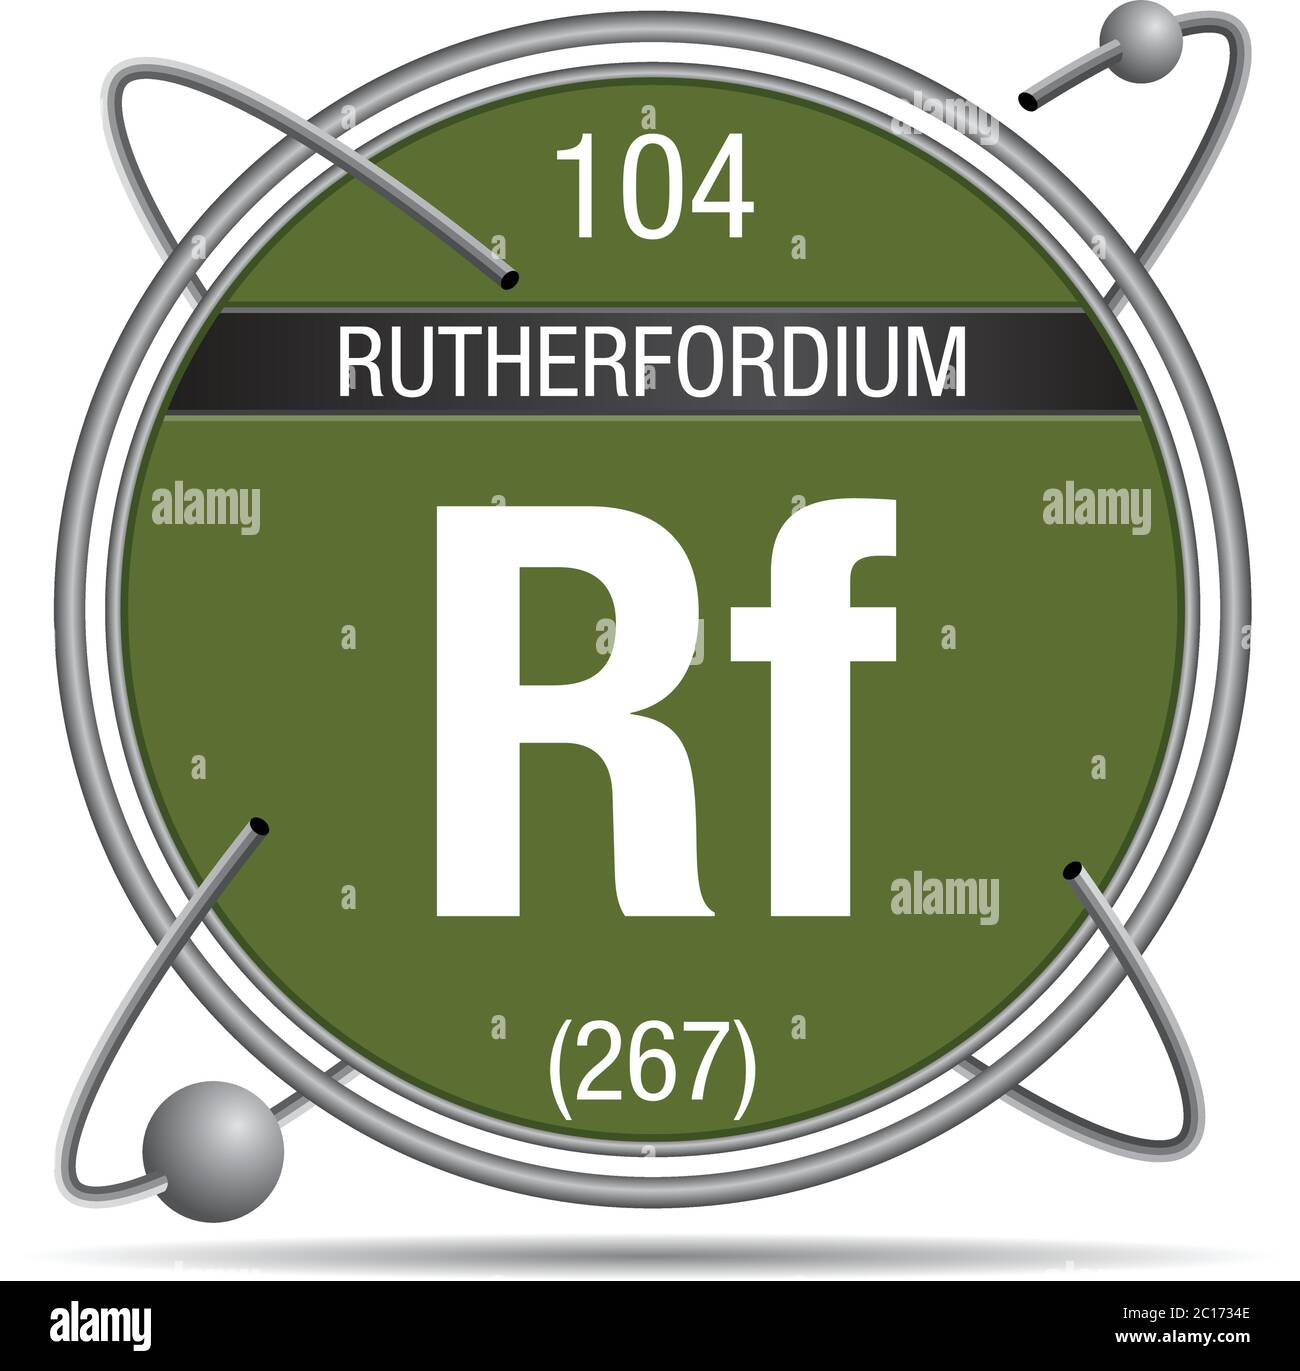 Rutherfordium symbol  inside a metal ring with colored background and spheres orbiting around. Element number 104 of the Periodic Table of the Element Stock Vector